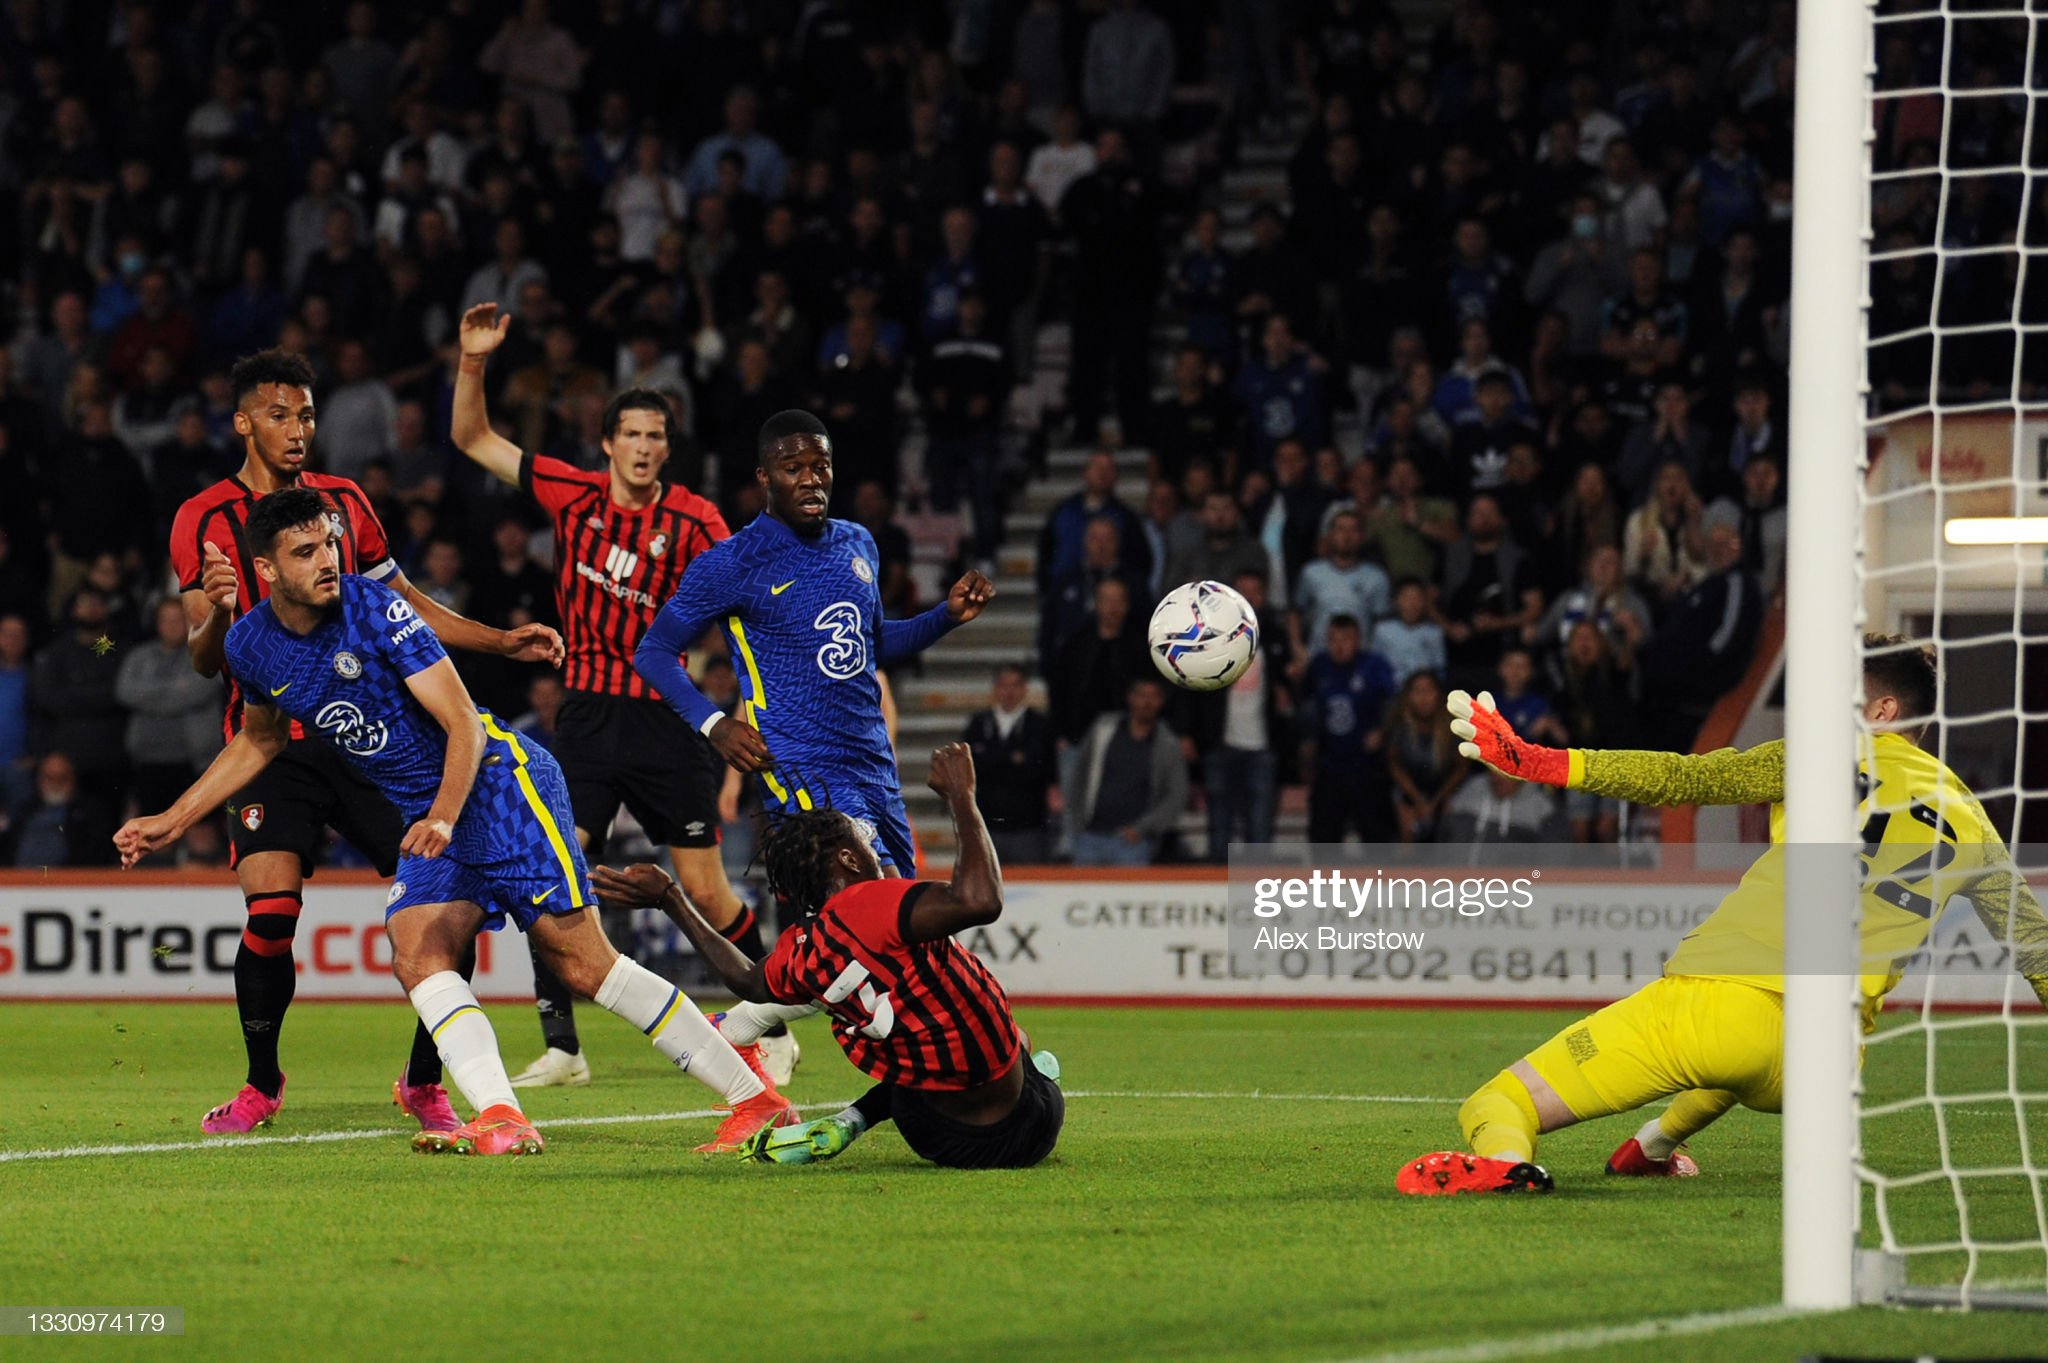 Chelsea come from behind to beat Bournemouth in friendly